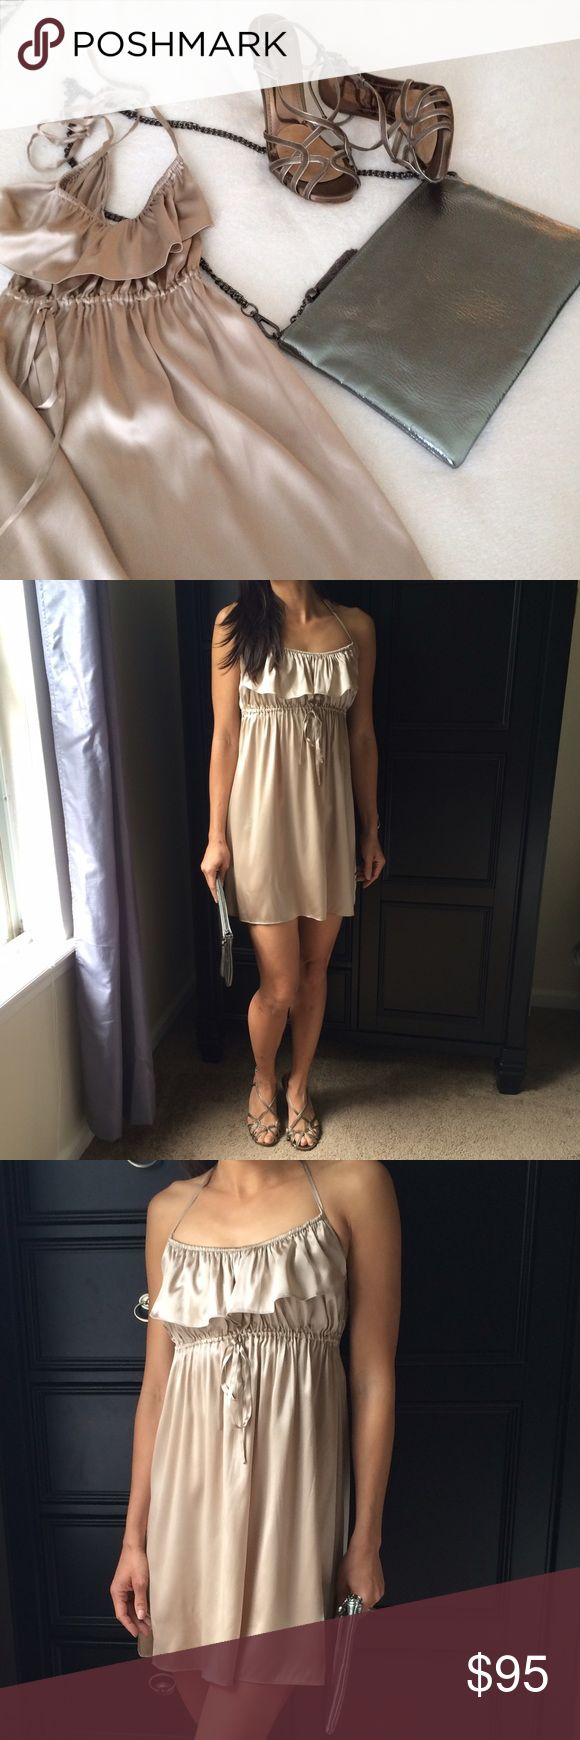 """💐Marciano Silk Dress Baby doll dress ties around neck, ruffle front 95% silk 5% spandex 32"""" long as shown on me and I'm 5'6"""" FLAW: see last pic and price is negotiable 😊 oh and all items for sale on covershot Dresses"""